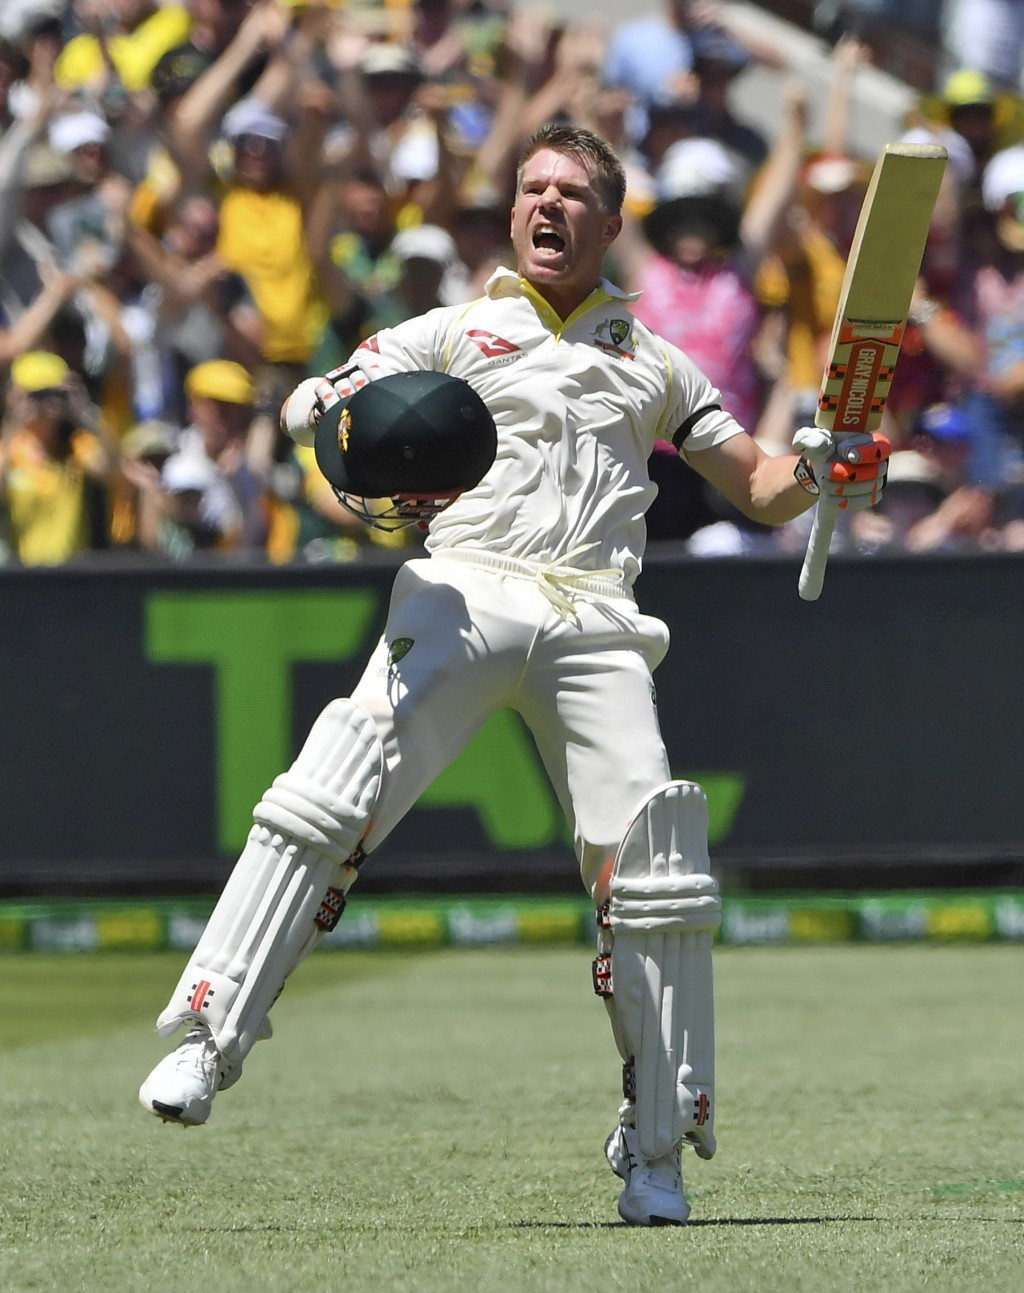 In this Dec. 26, 2017, file photo, Australia's David Warner celebrates scoring a century against England during their Ashes cricket test match in Melb...